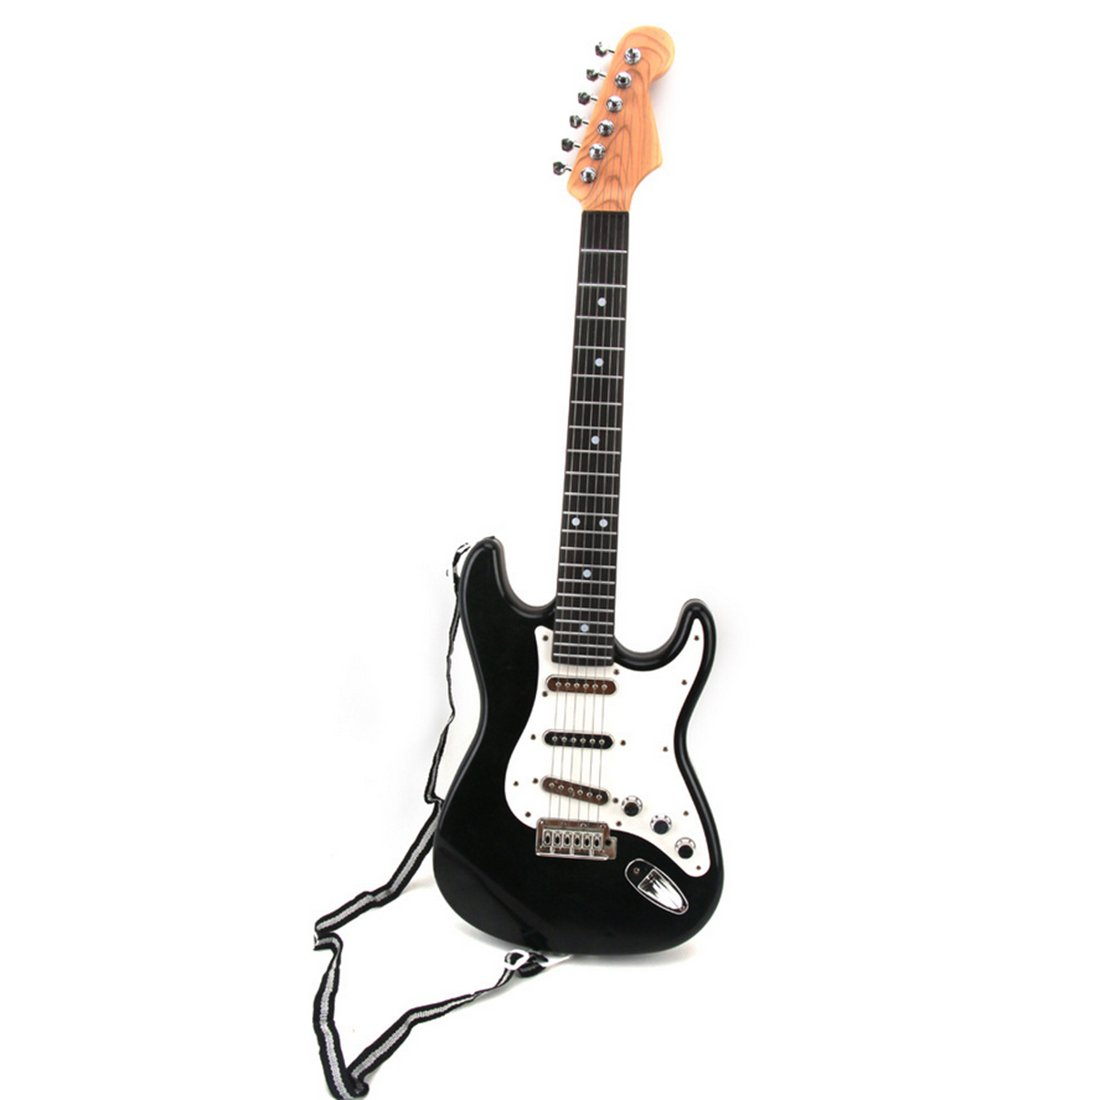 WOLFBUSH Kids Toy Guitar, 6 Strings Electric Cool Music Guitar 26 Inch Musical Instruments - Black